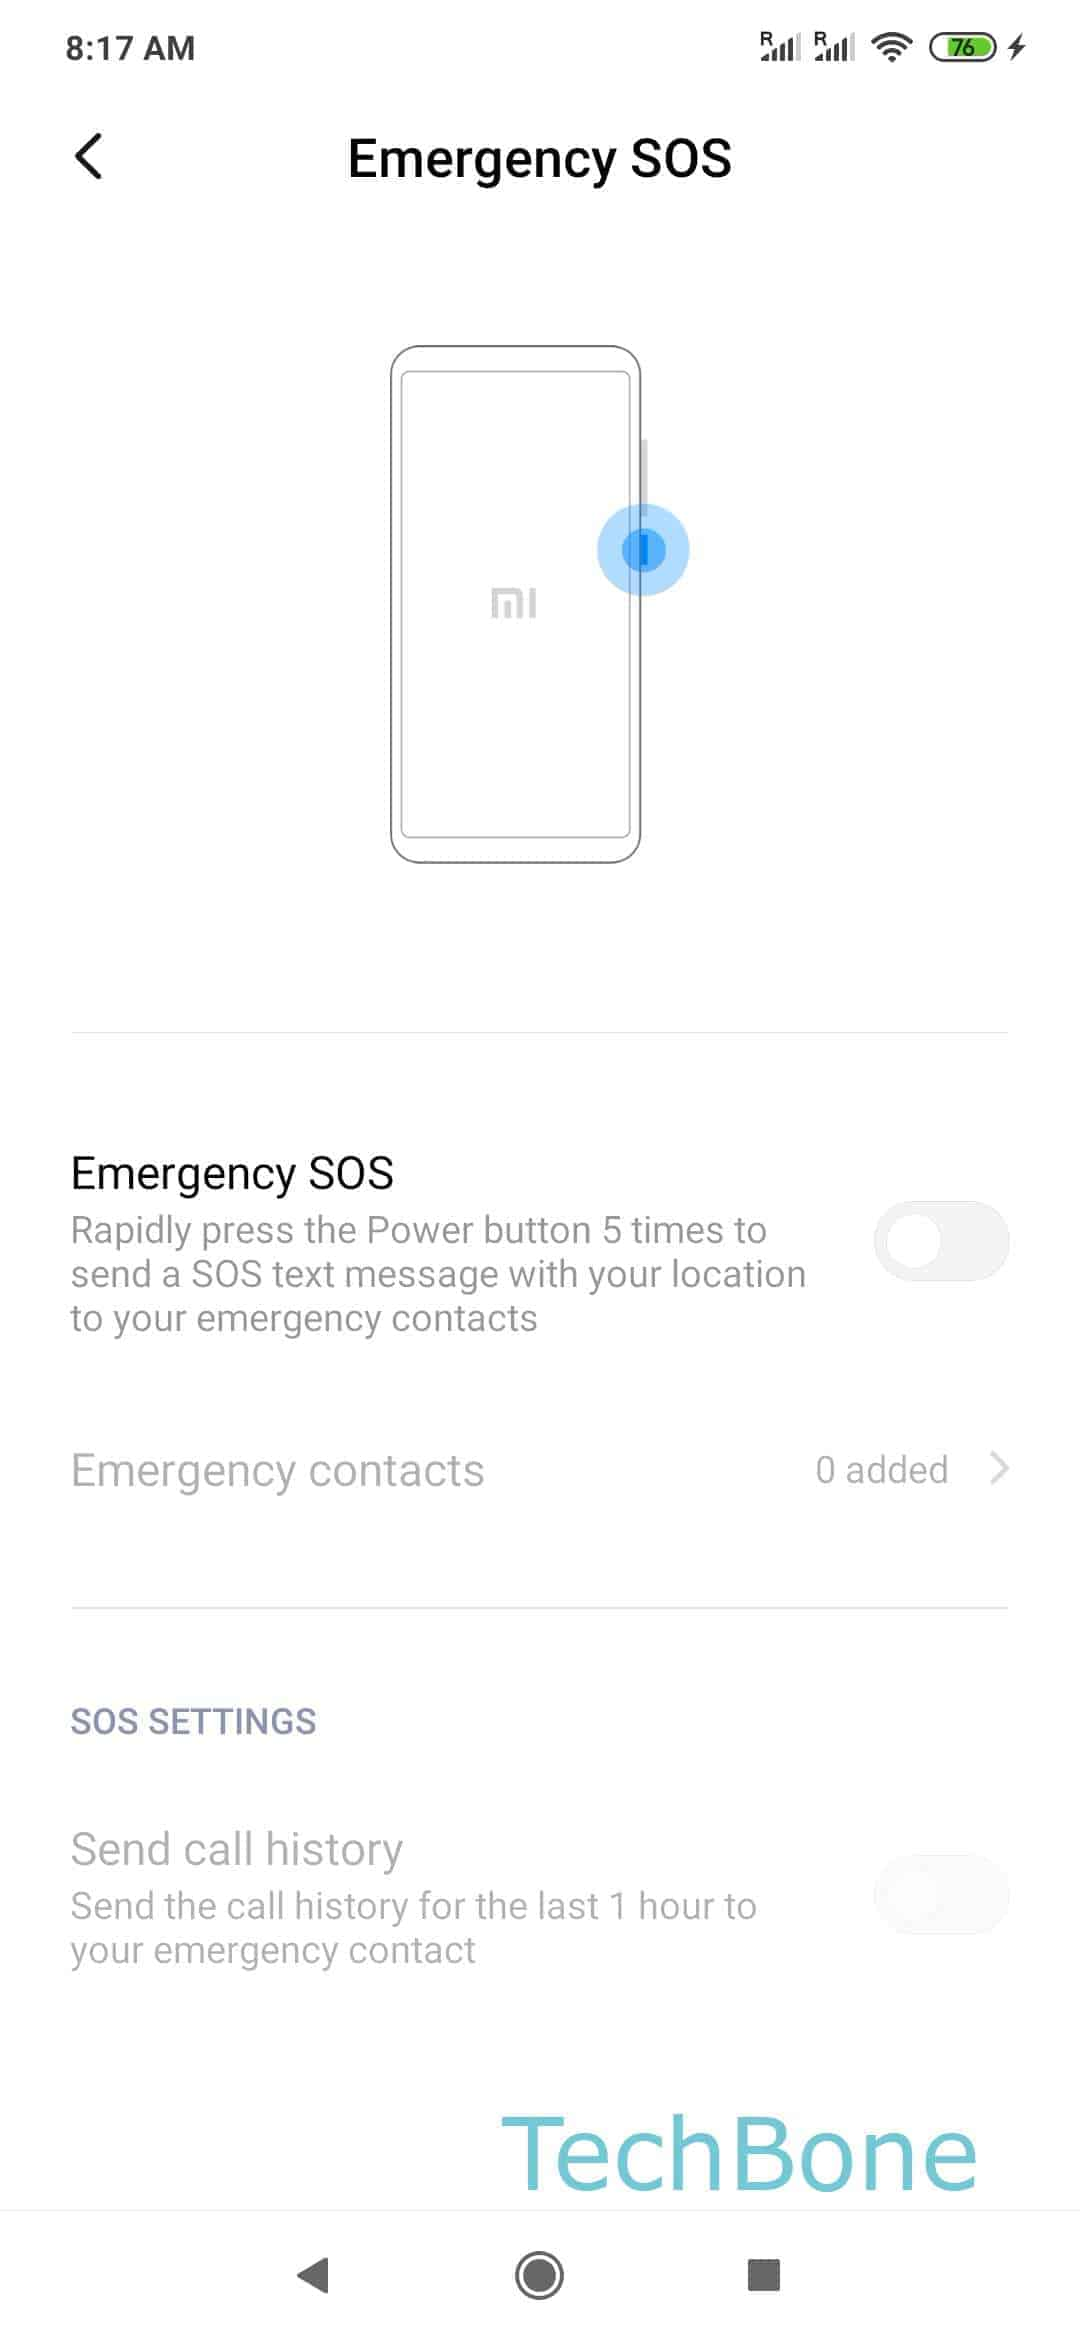 Step 4: Enable or disable Emergency SOS